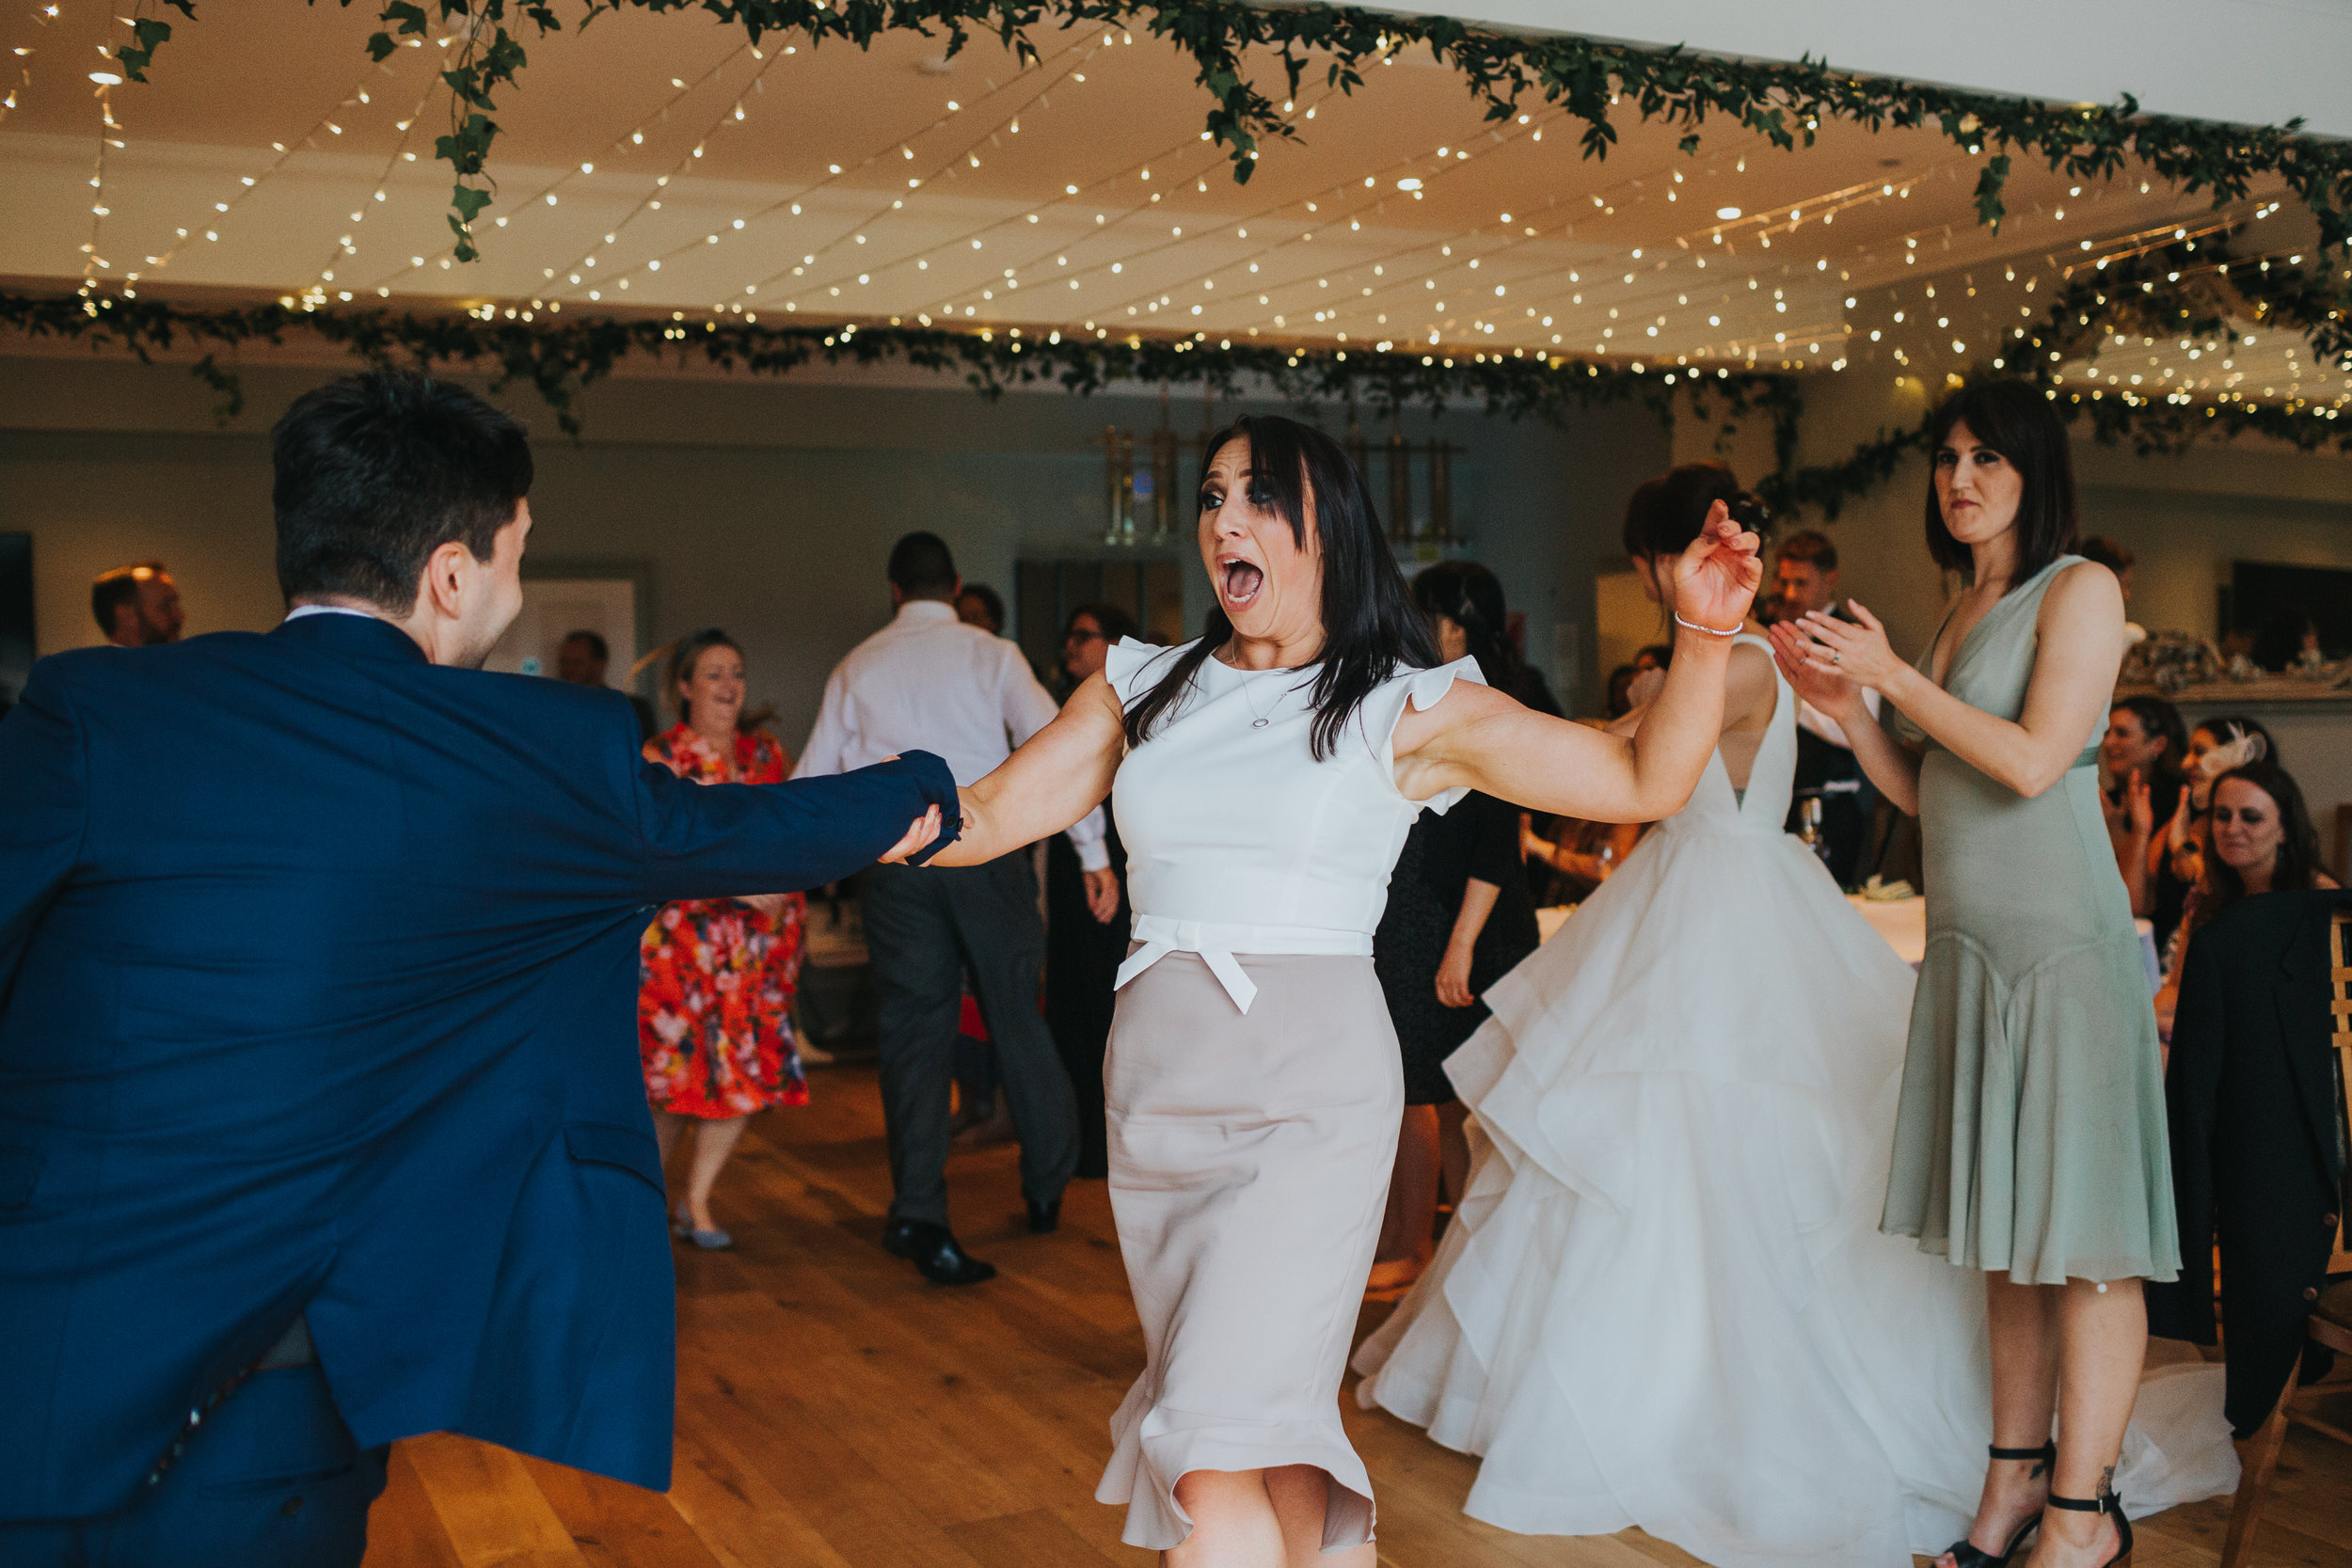 Wedding guest shrieks and nearly slips.